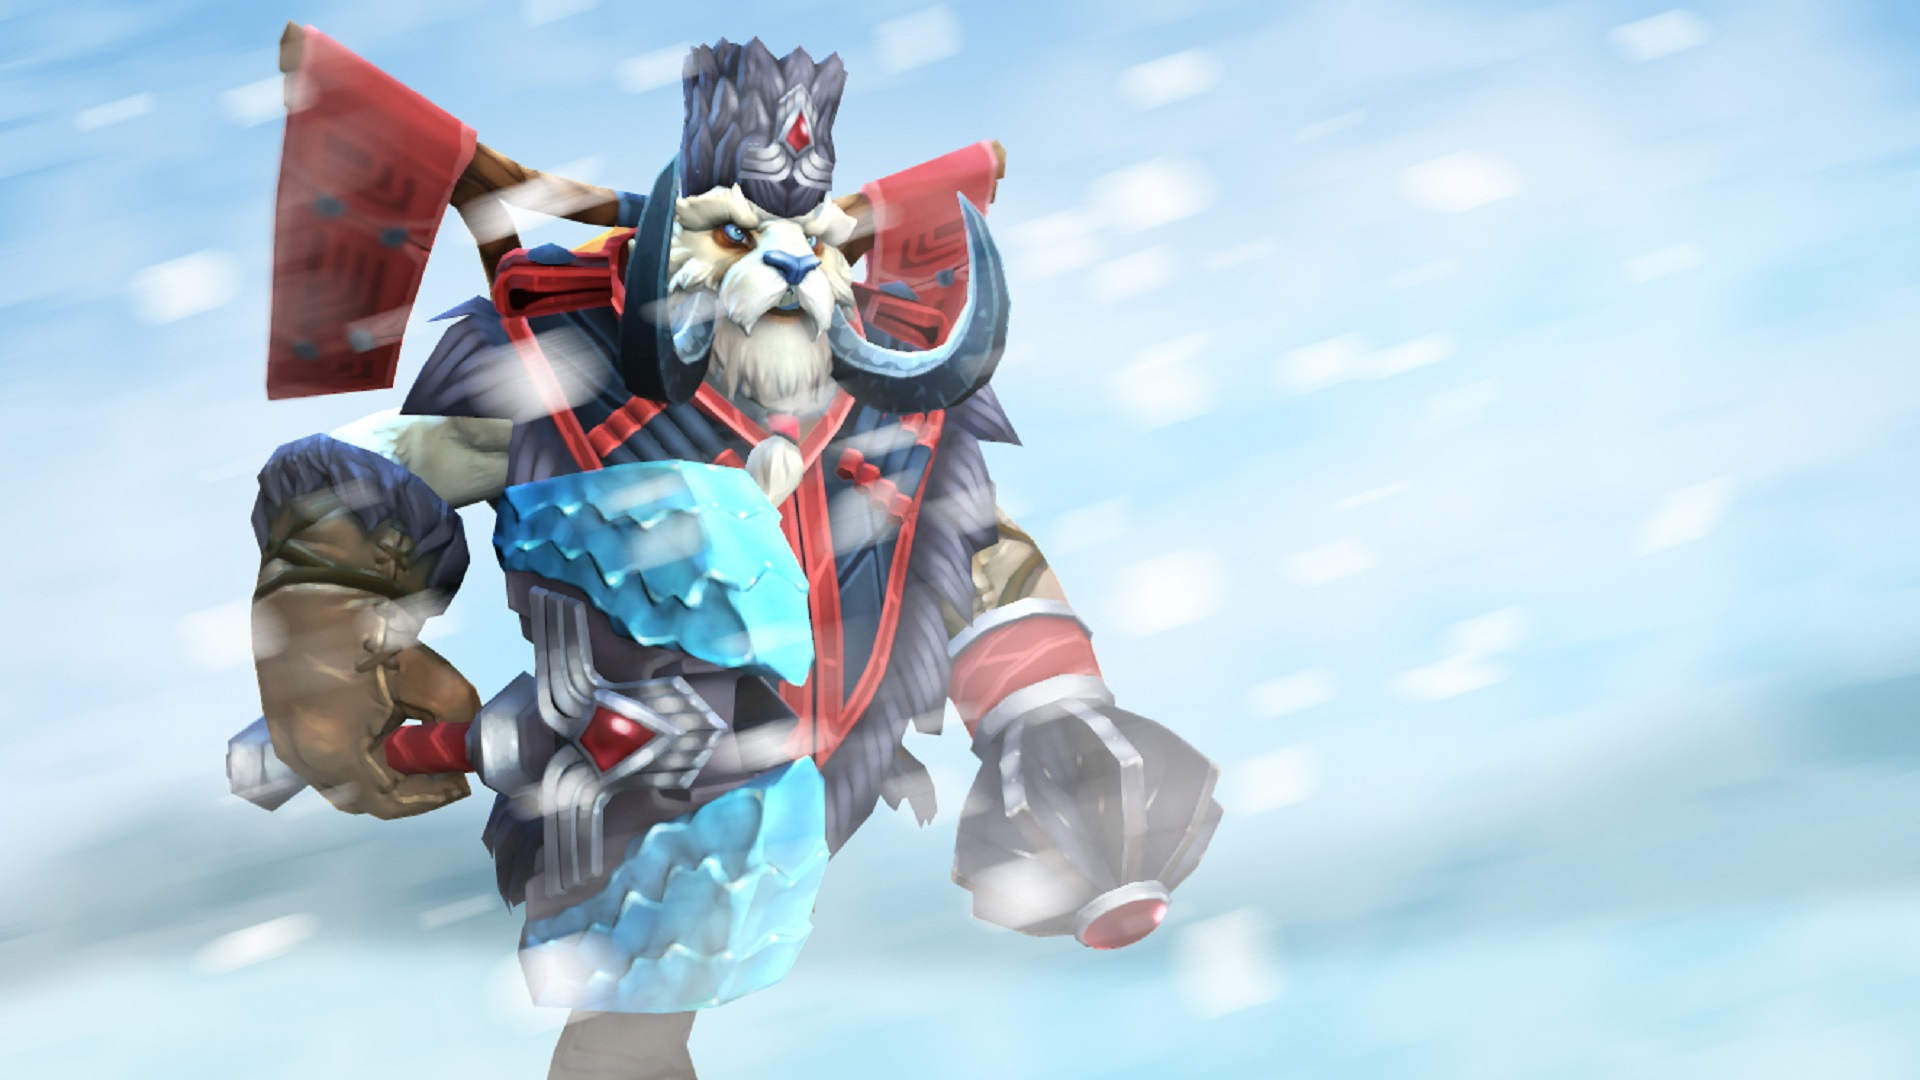 Free Download 3d God Wallpaper For Pc Tusk Wallpaper Computer Backgrounds Dota 2 Wallpapers